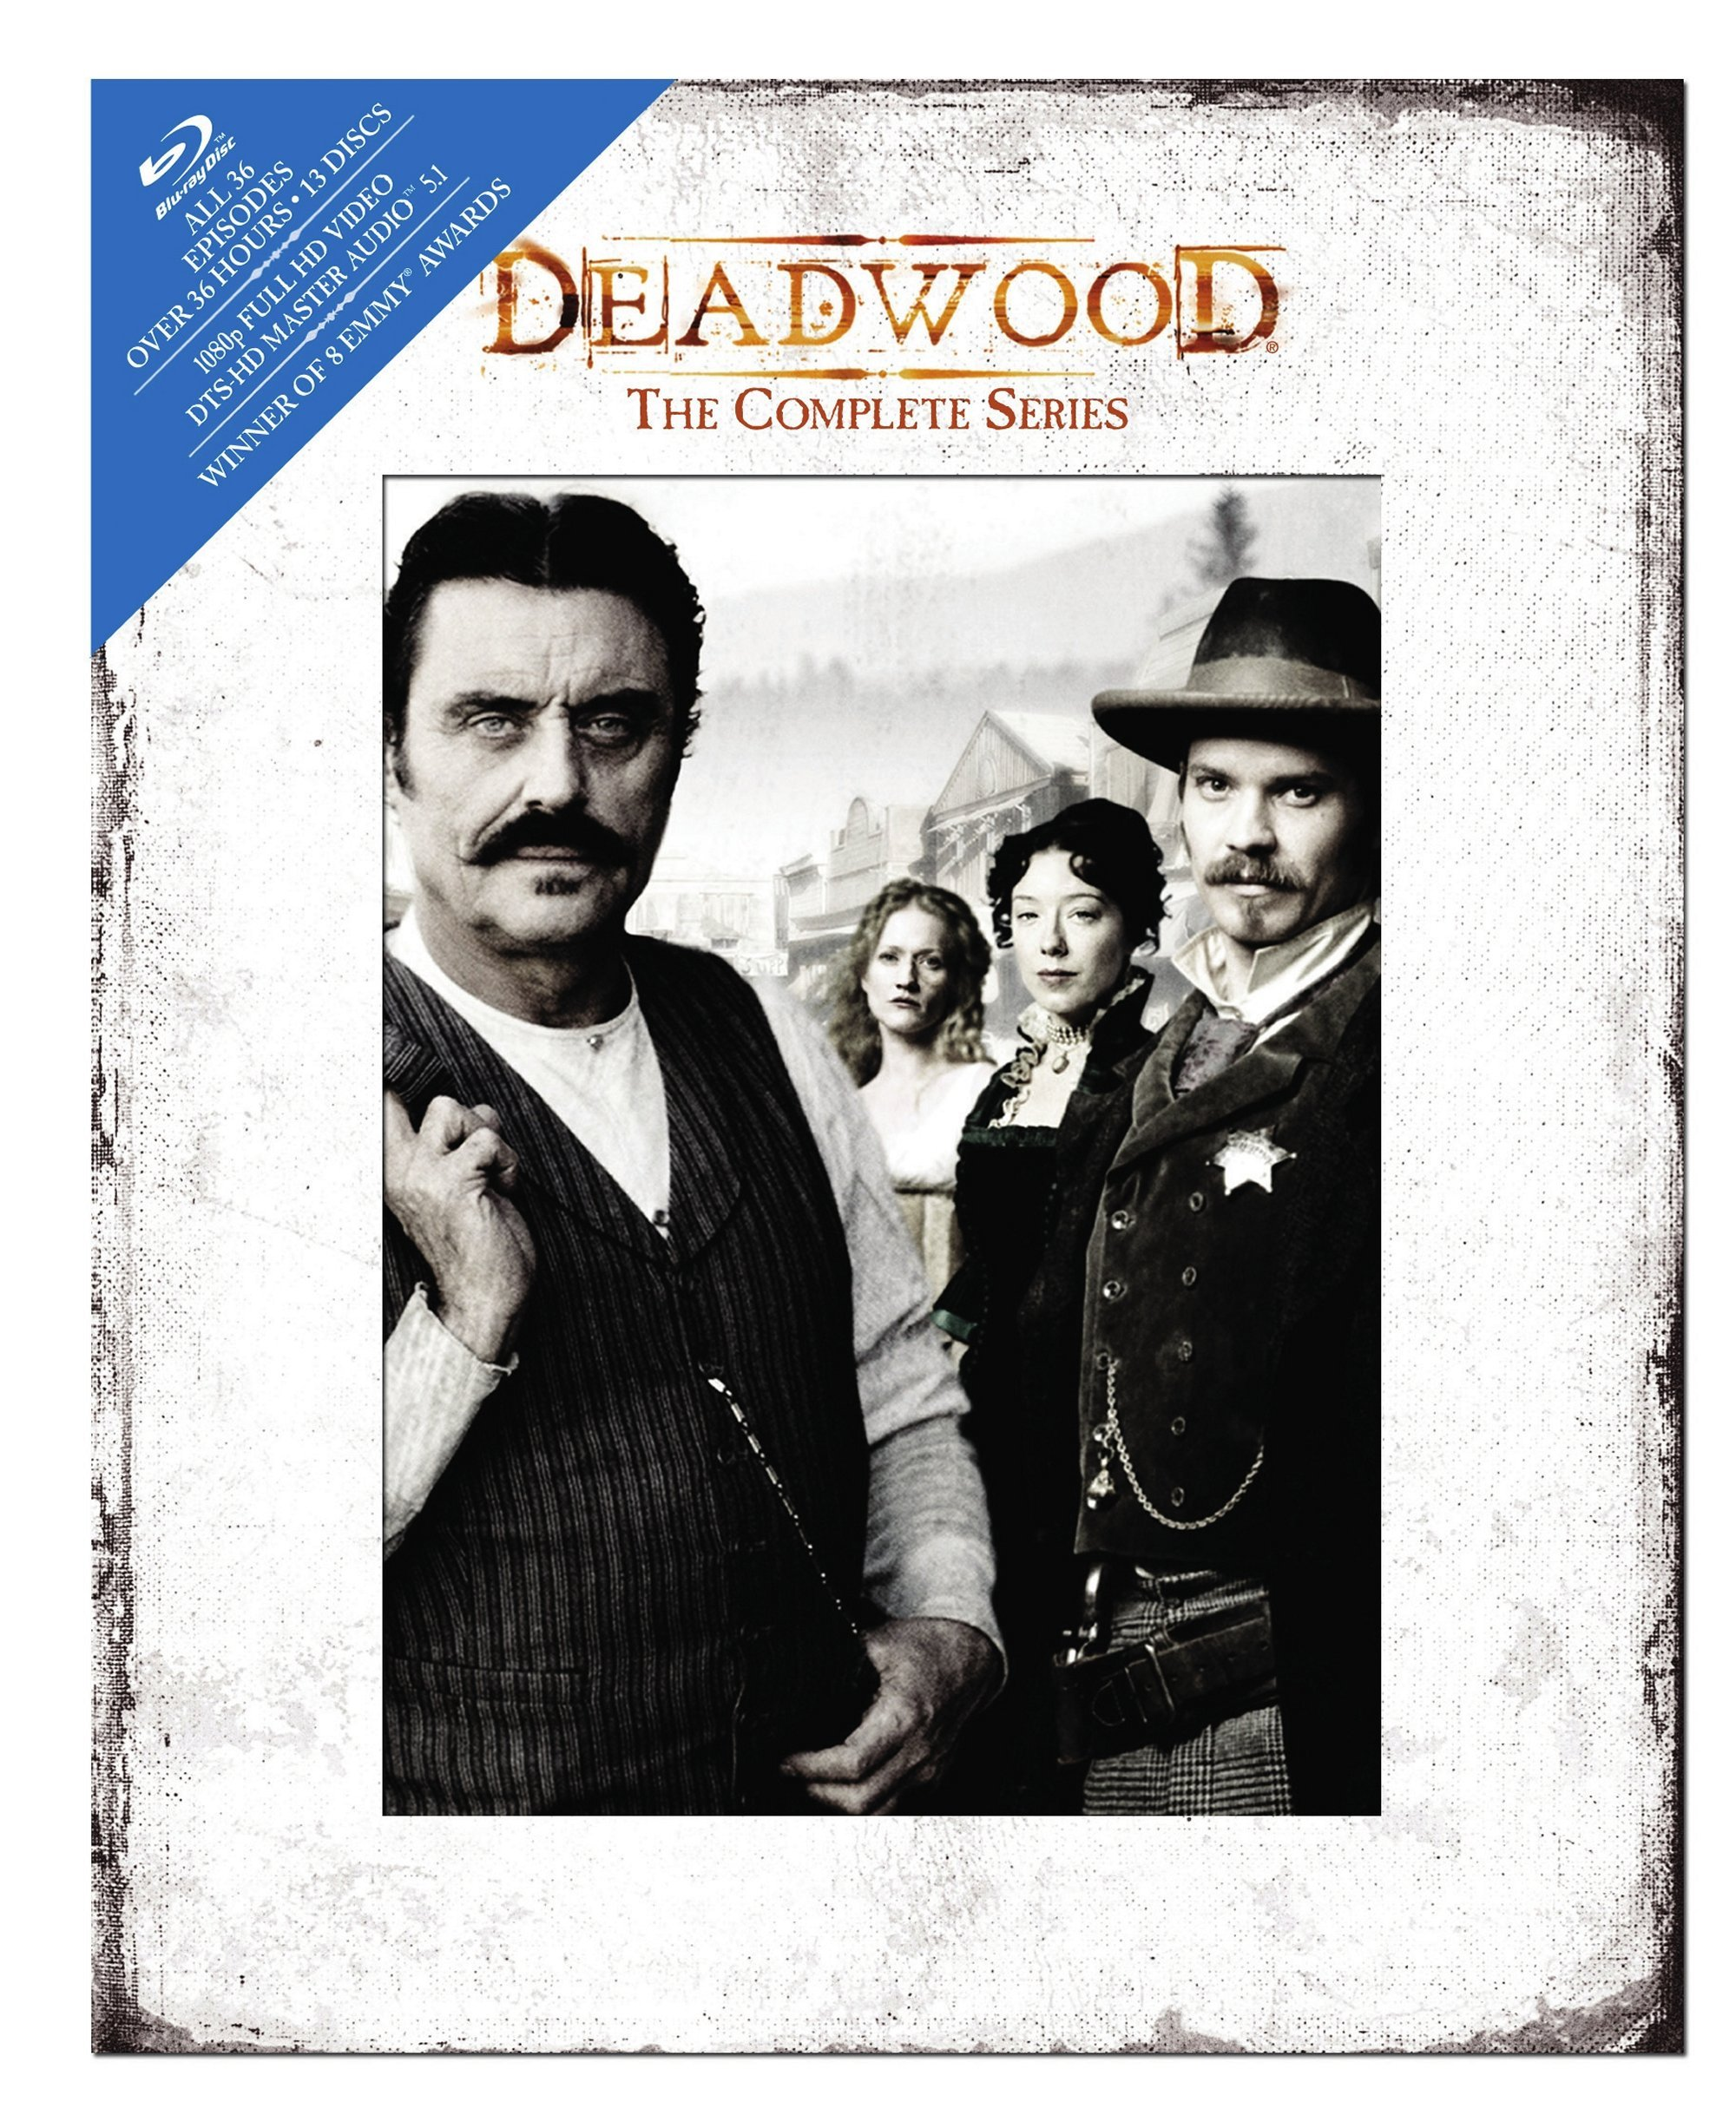 Deadwood: The Complete Series [Blu-ray] by Warner Bros